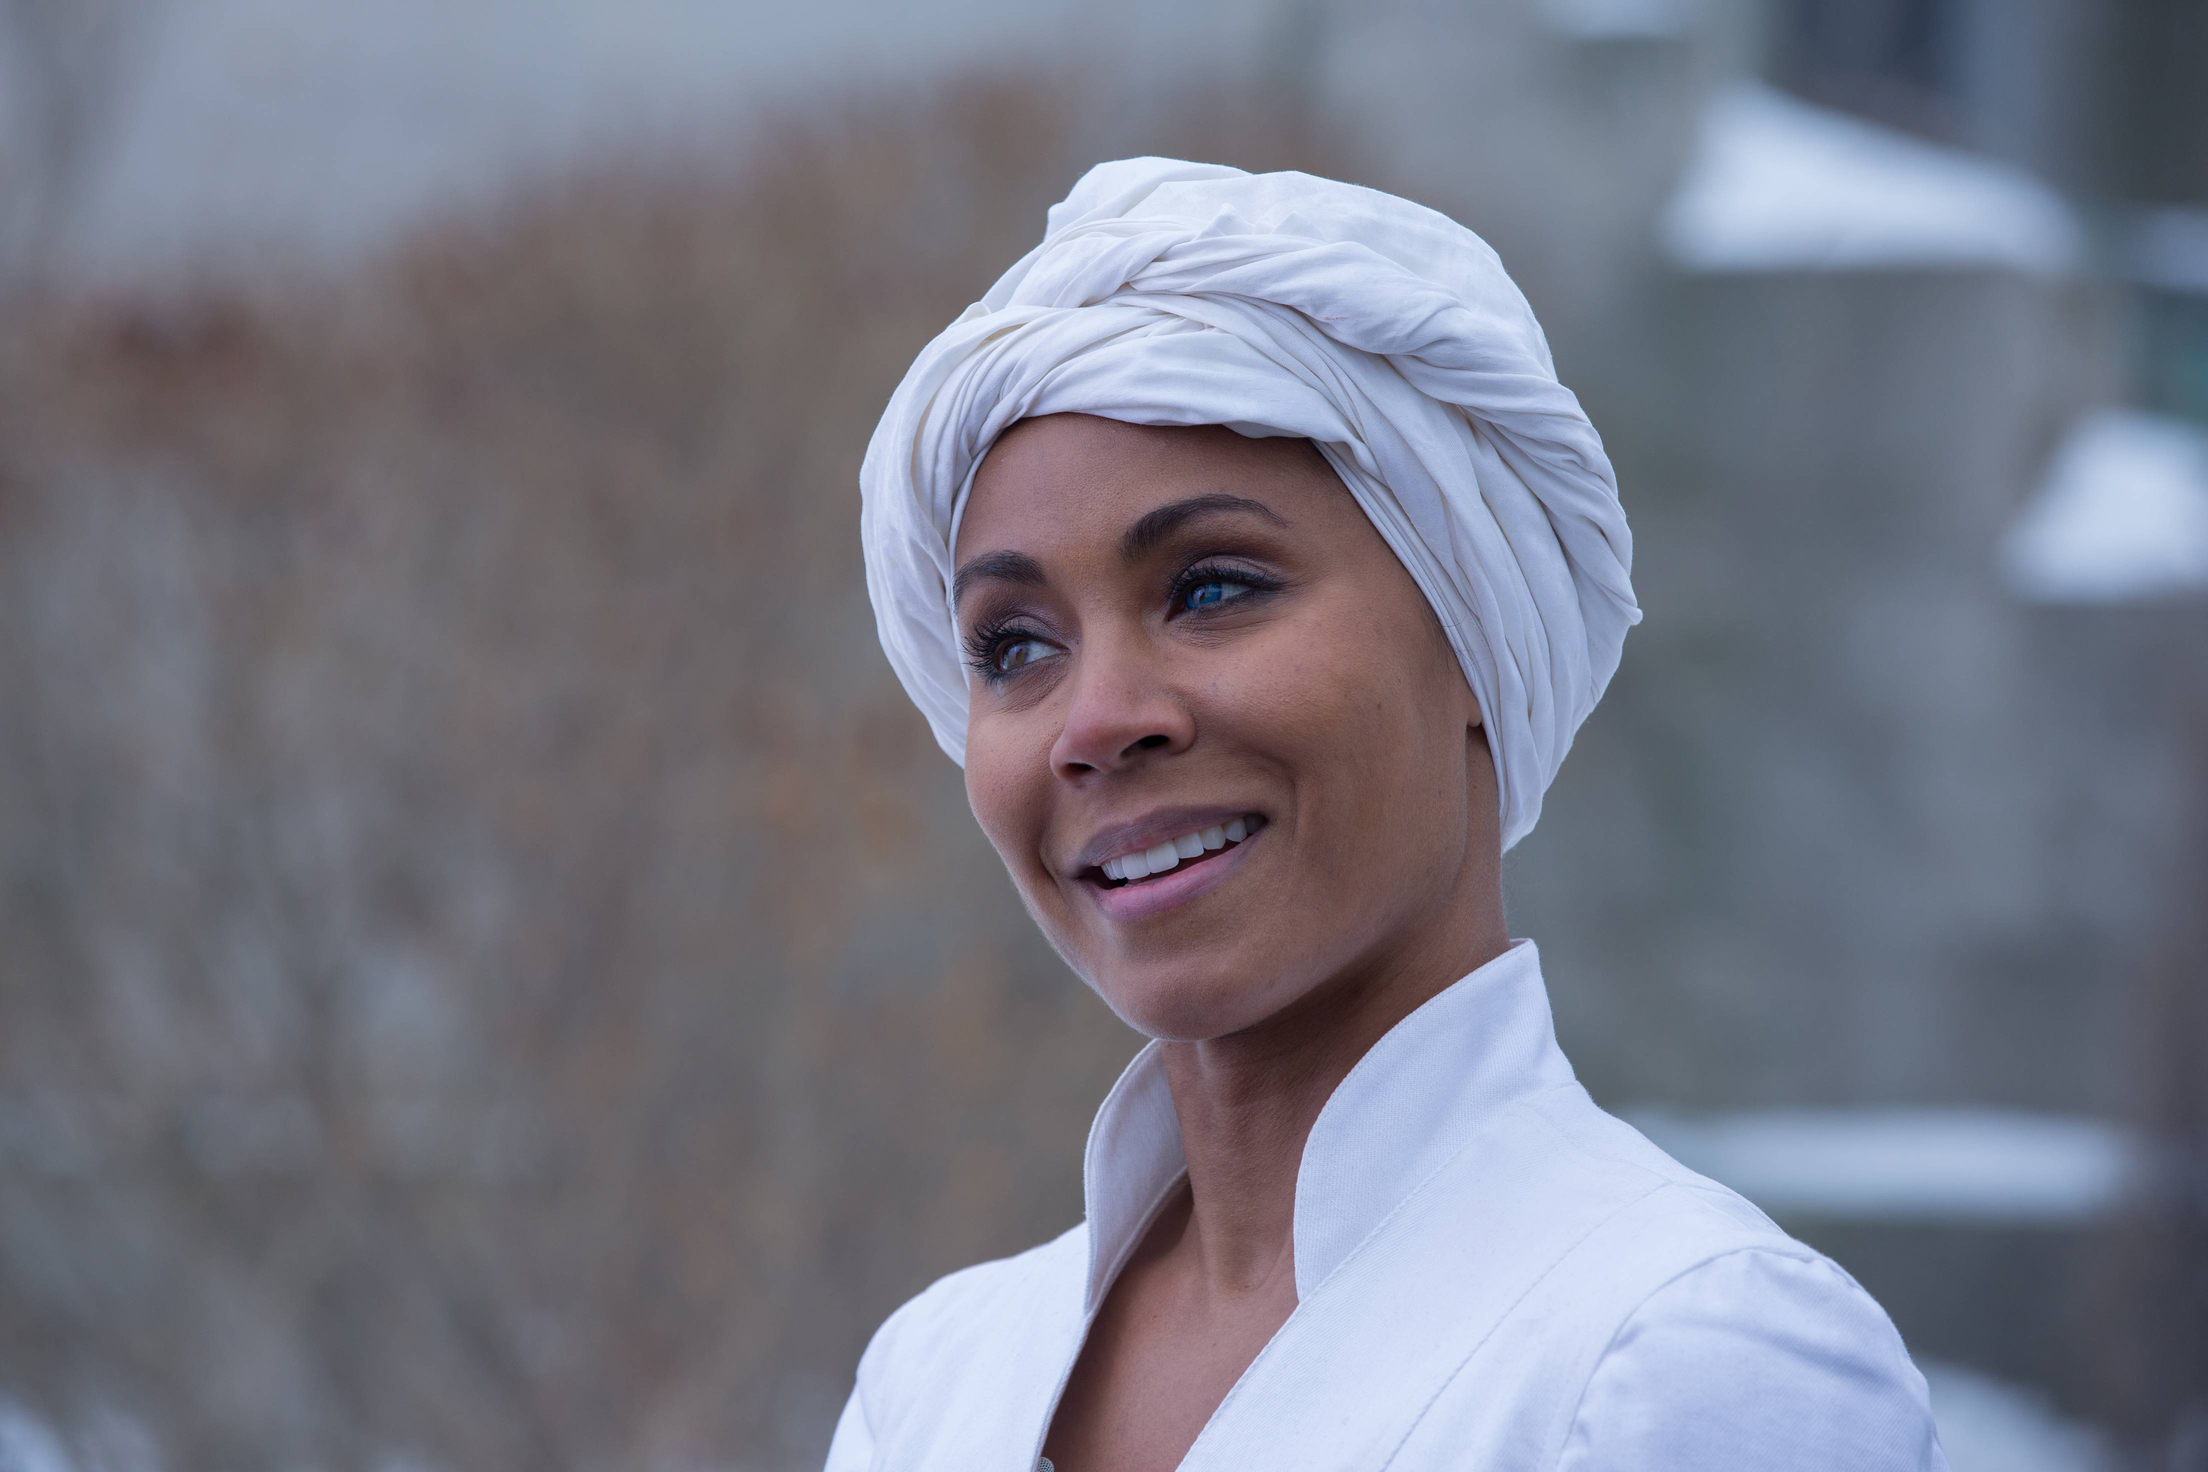 """GOTHAM: Fish Mooney (Jada Pinkett Smith), smiles after escaping the Dollmaker in the """"Beasts of Prey"""" episode of GOTHAM airing Monday, April 13 (8:00-9:00 PM ET/PT) on FOX. ©2015 Fox Broadcasting Co. Cr: Jessica Miglio/FOX"""